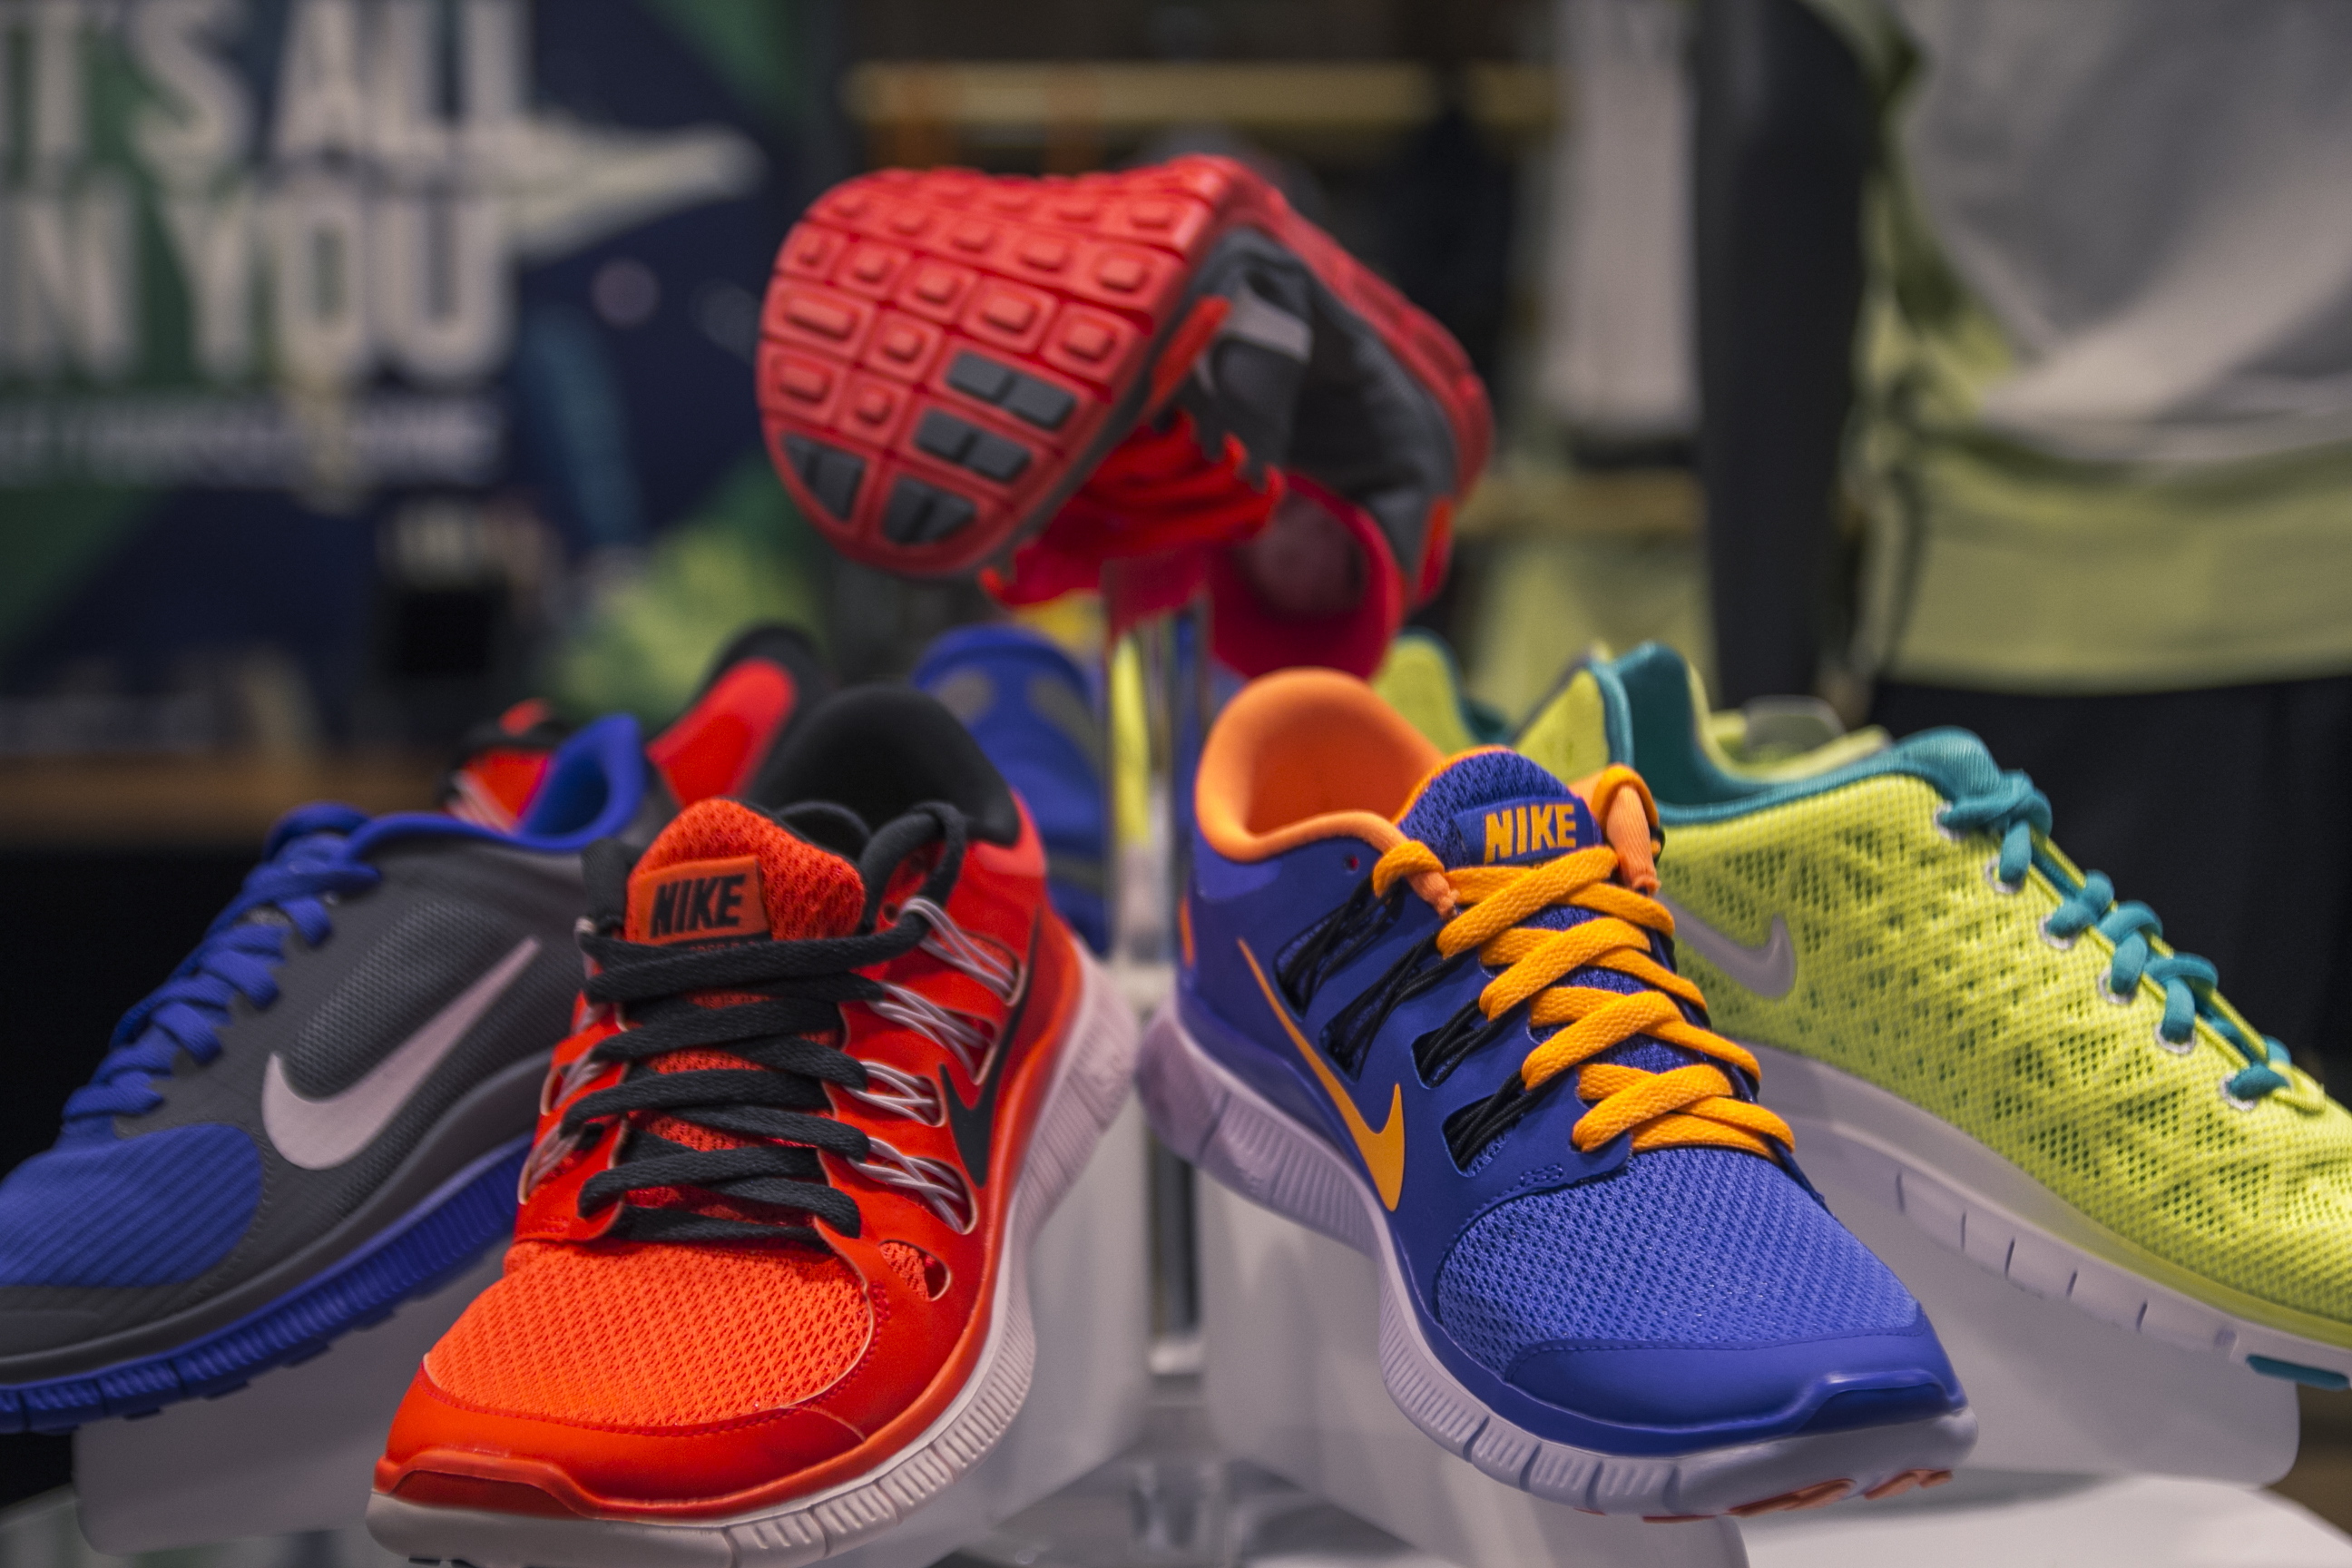 nike free 5.0 price in philippines war